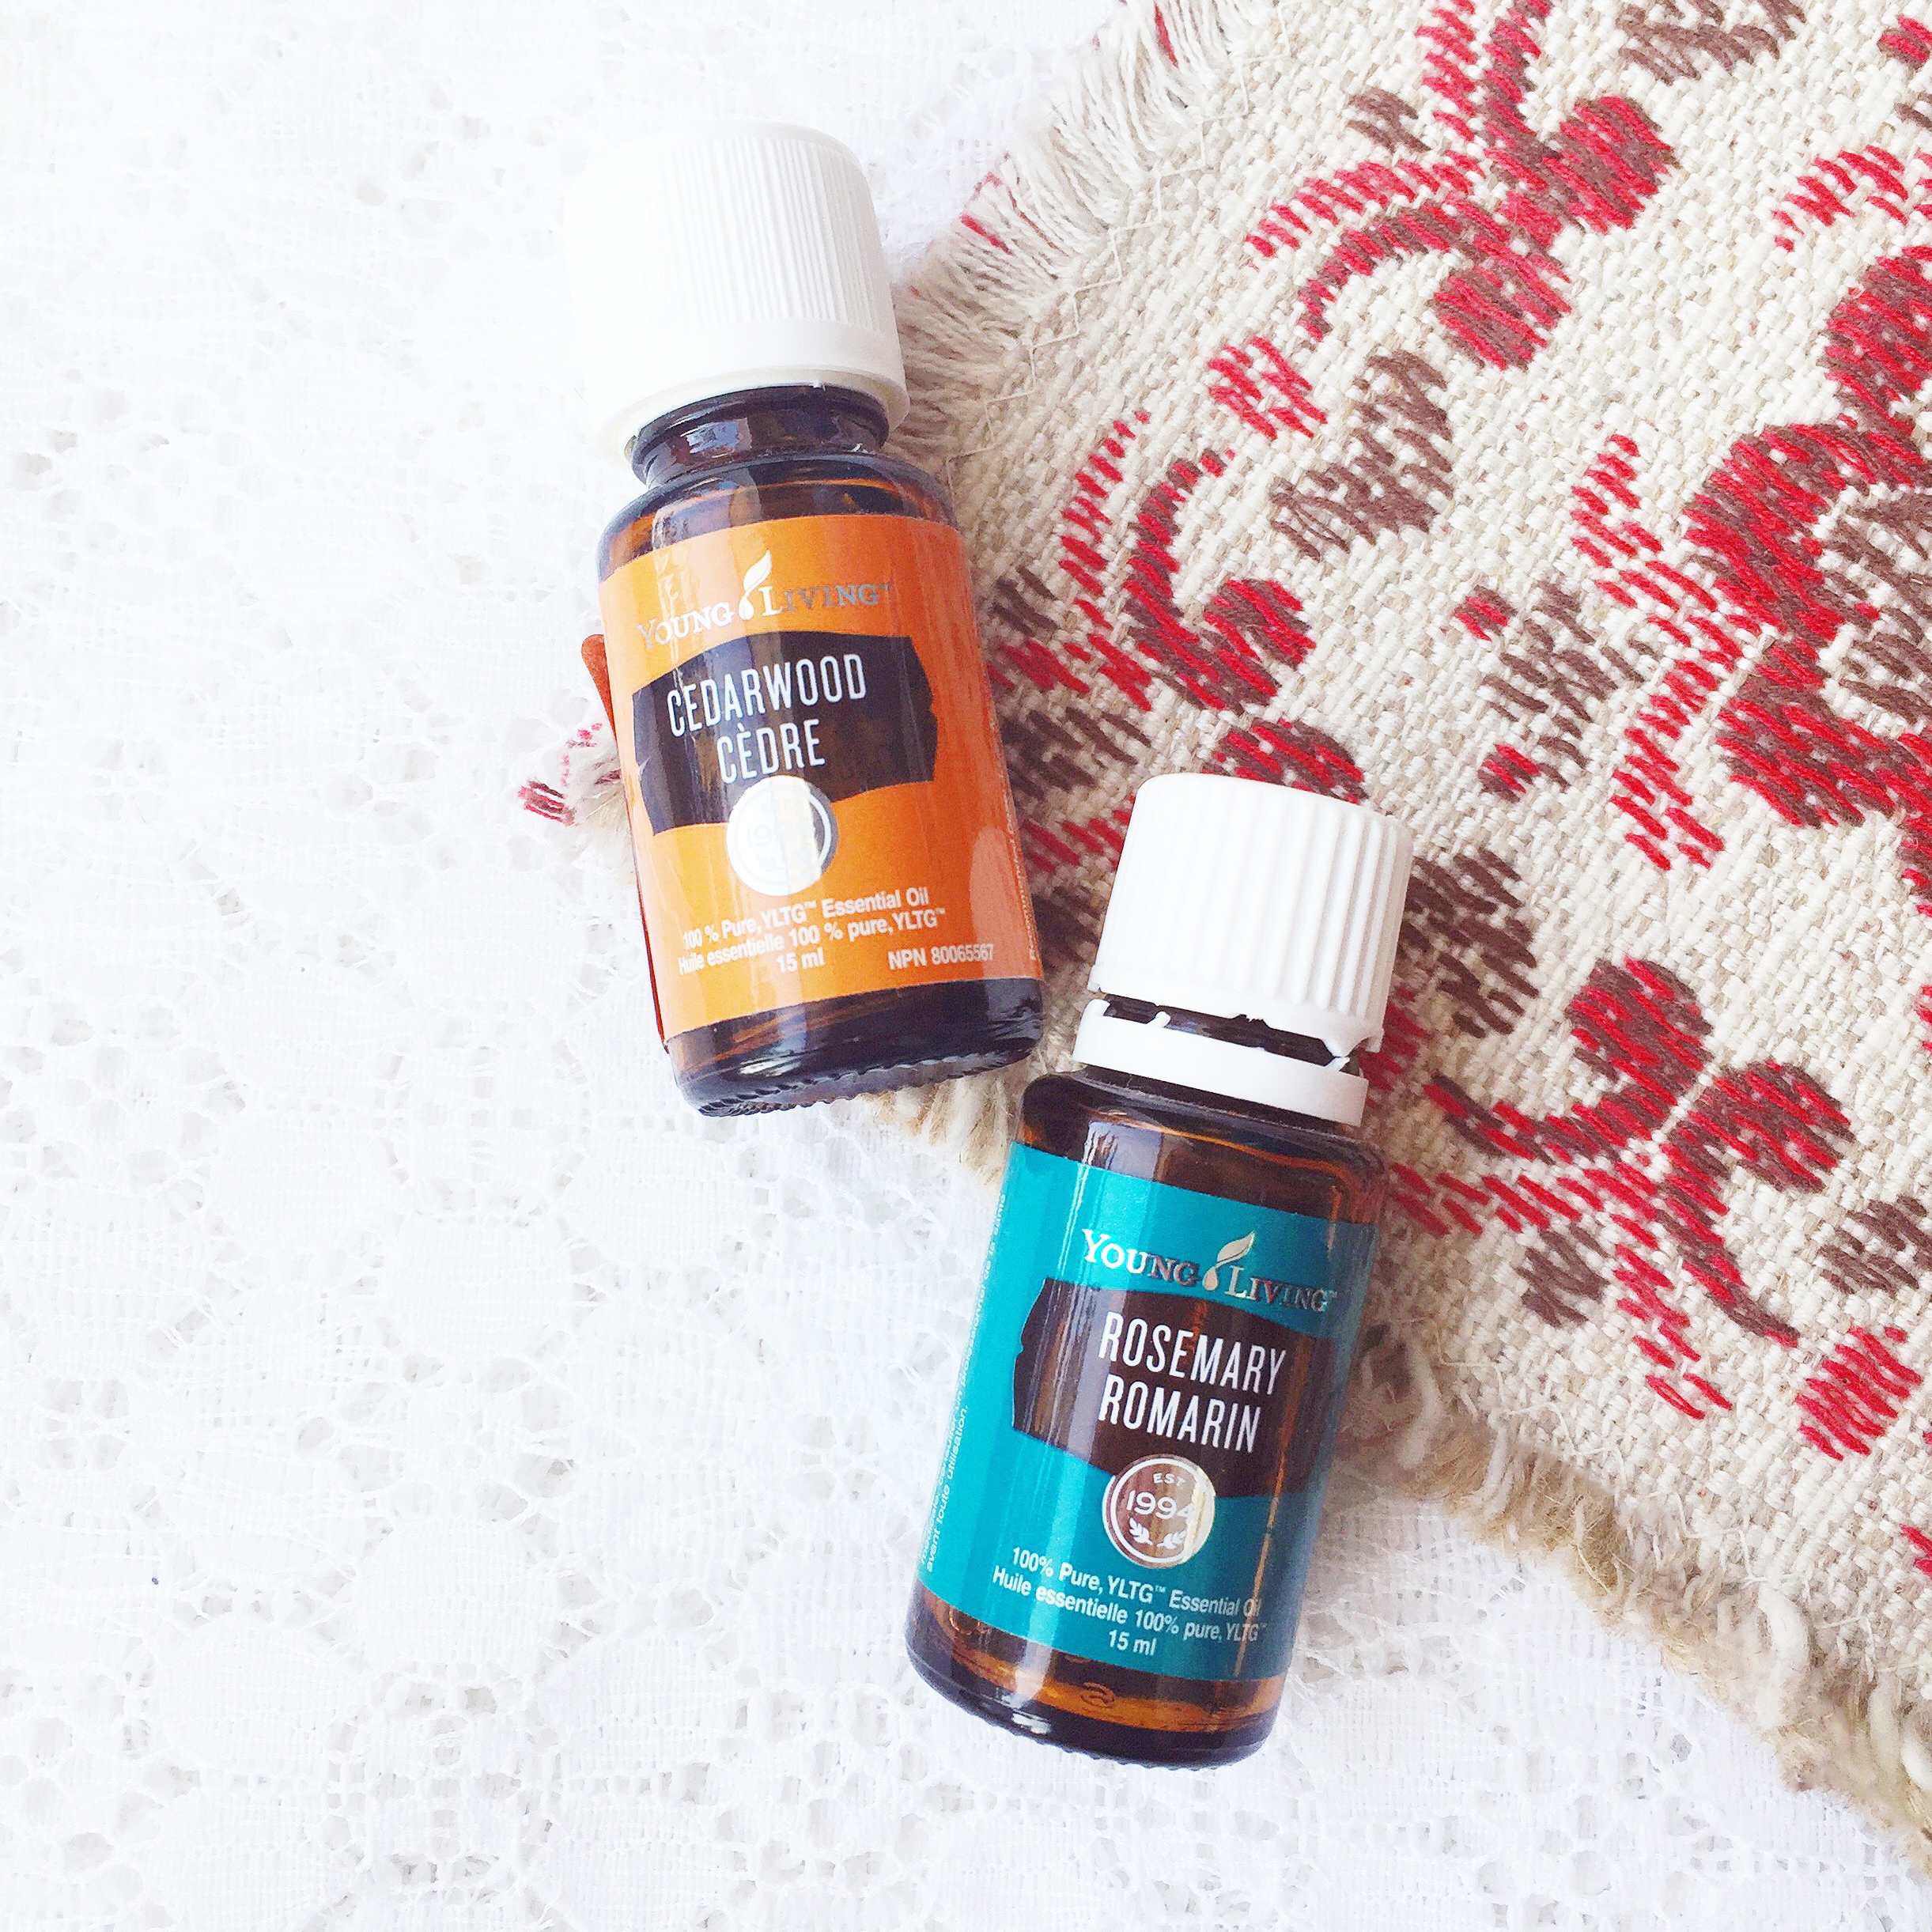 Living With Essential Oils: November Picks ~ Cedarwood & Rosemary Young Living Diffuser Blends